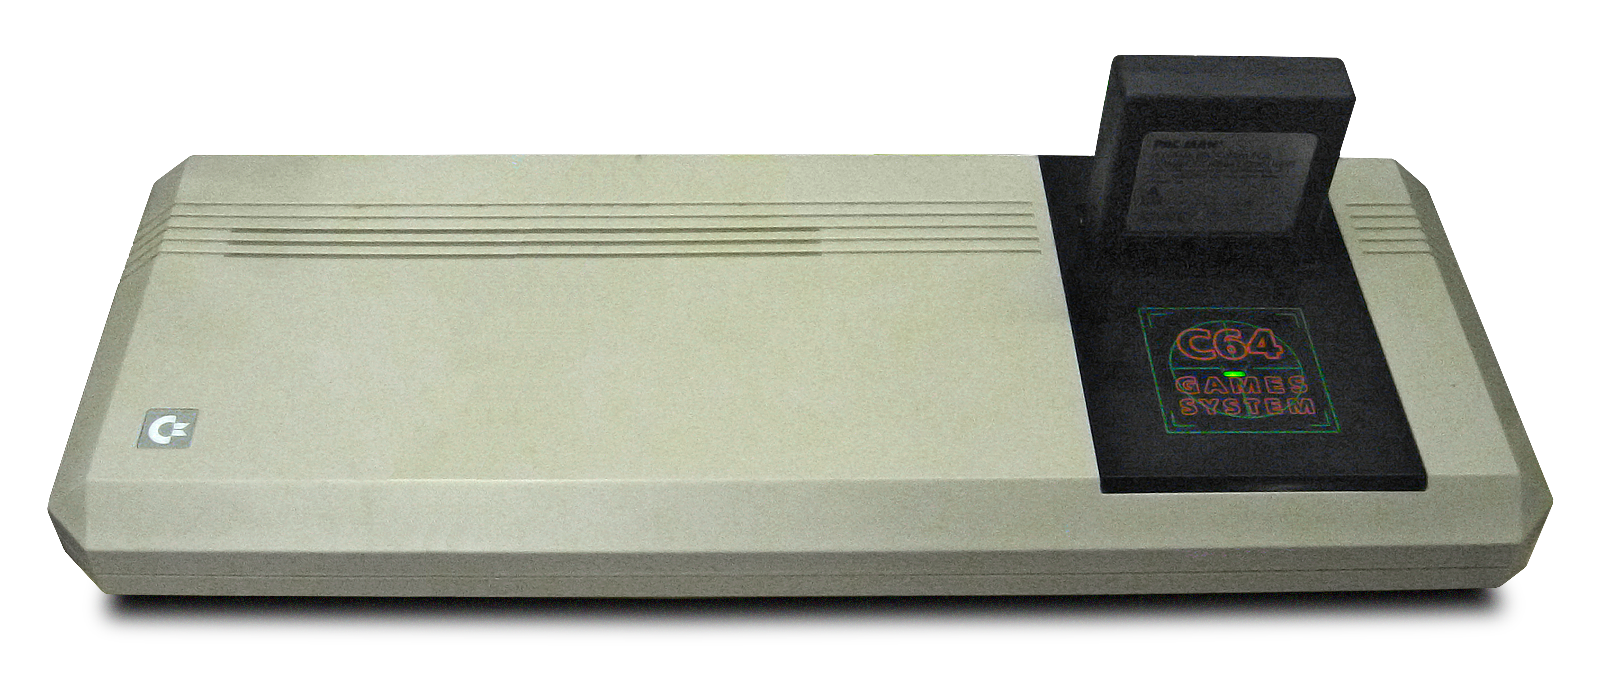 El Commodore 64 Games System, dedicado exclusivamente a jugar.